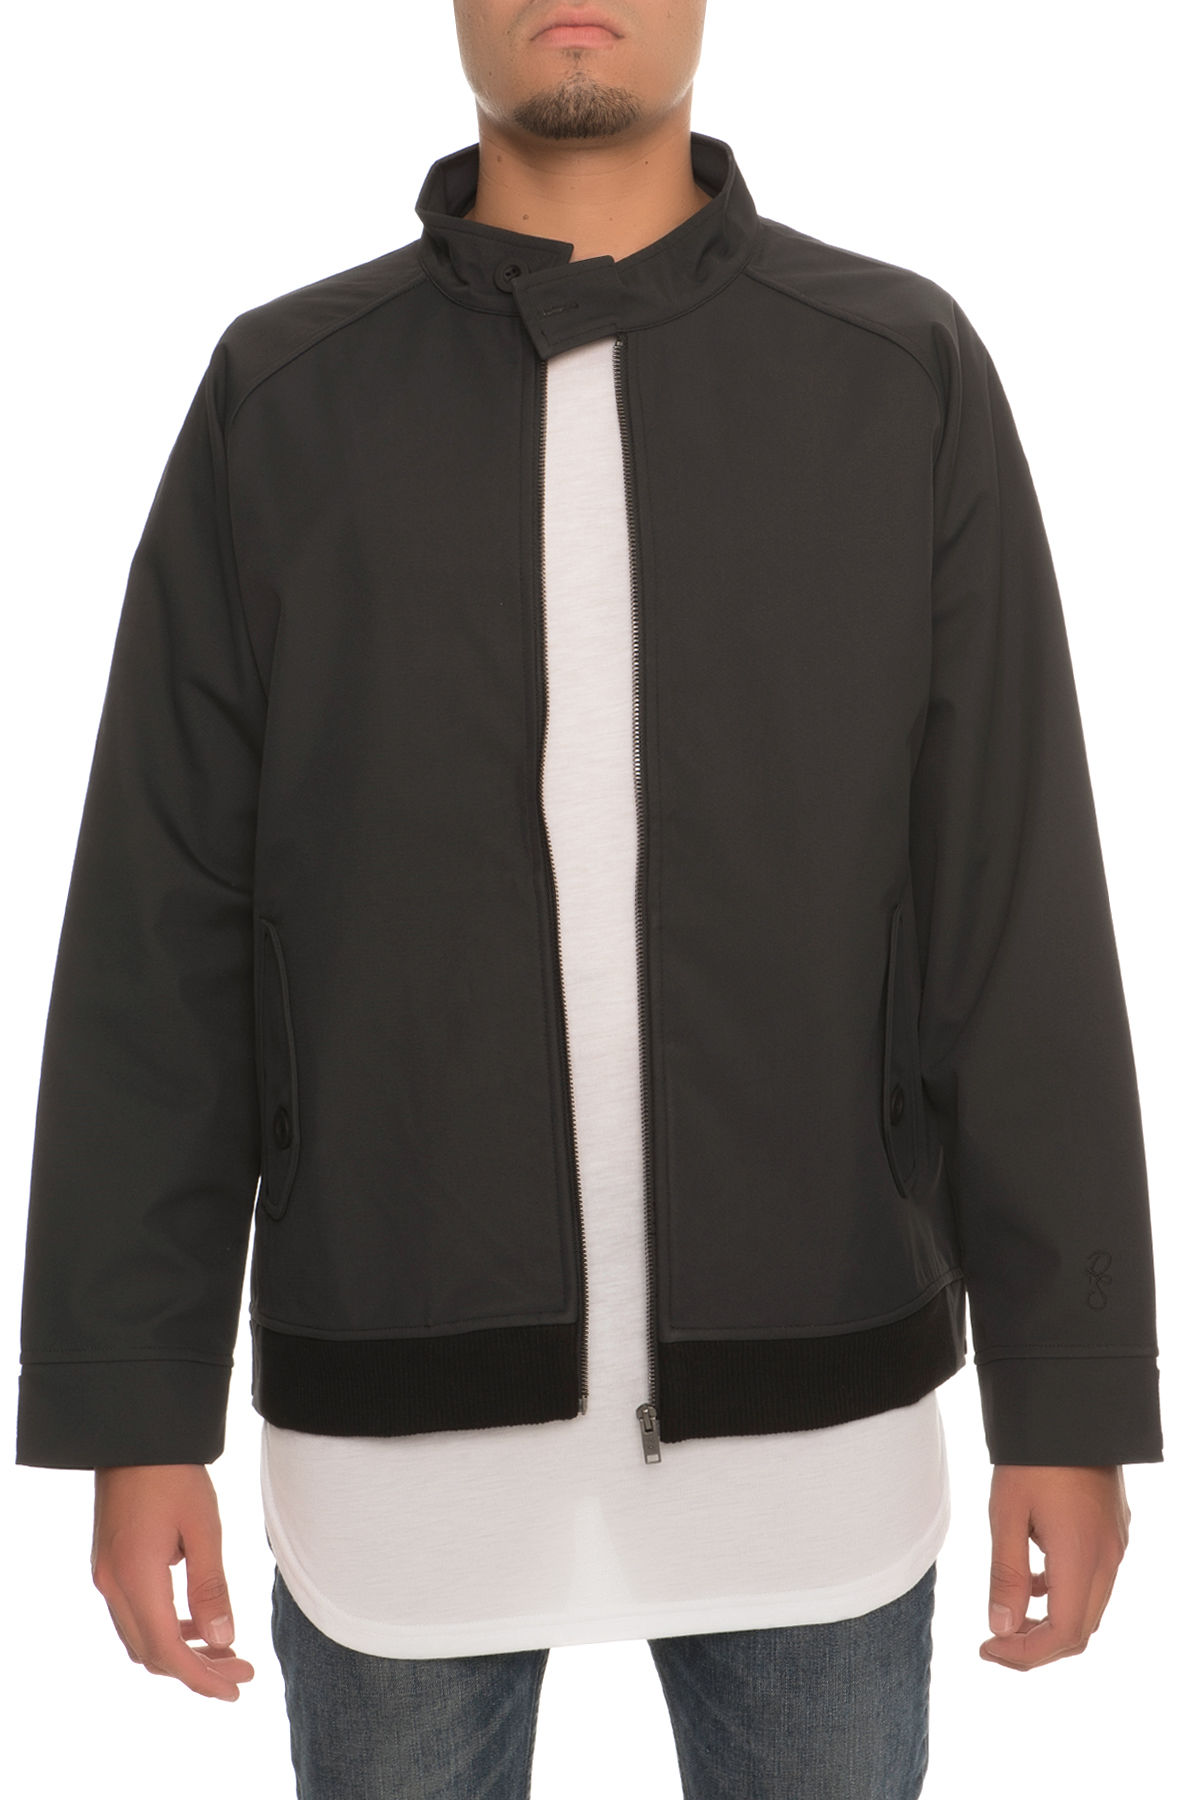 Image of The Place Jacket in Black